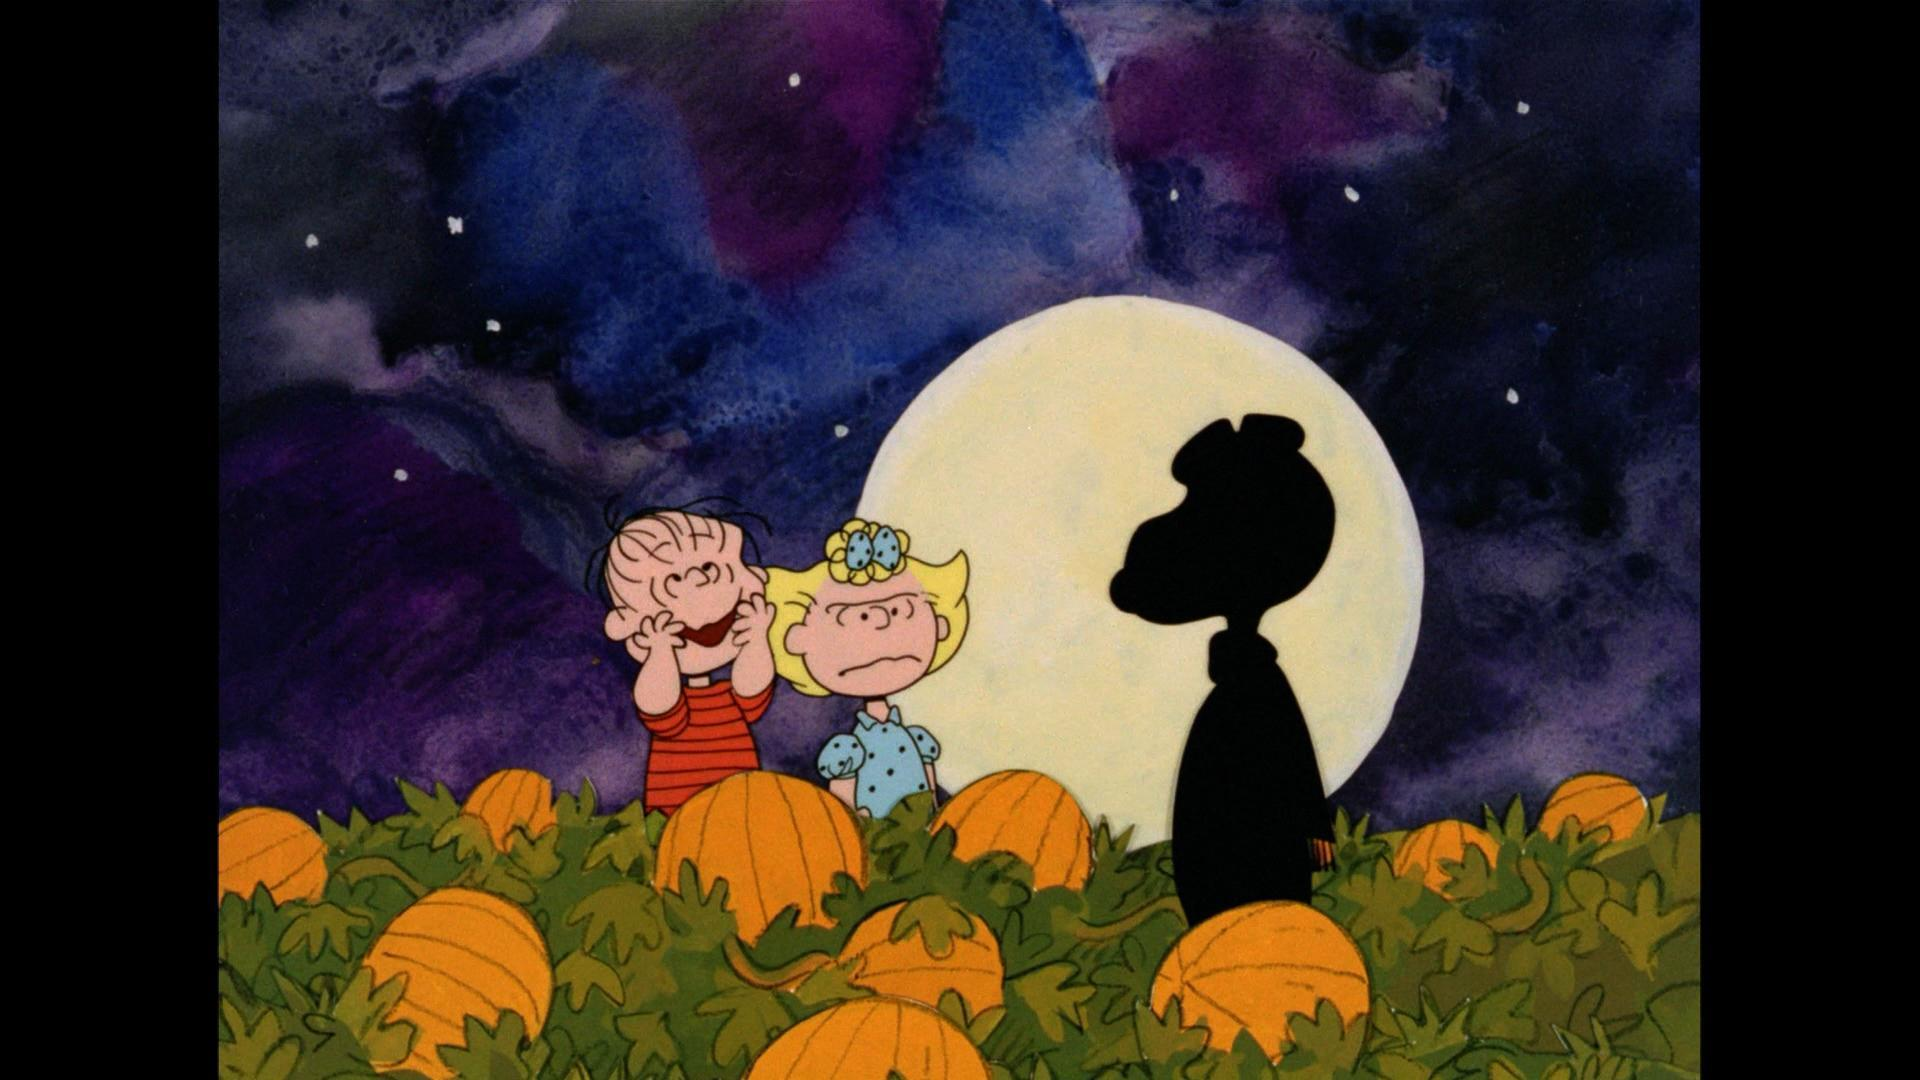 Free Download Great Pumpkin Charlie Brown Wallpapers 1920x1080